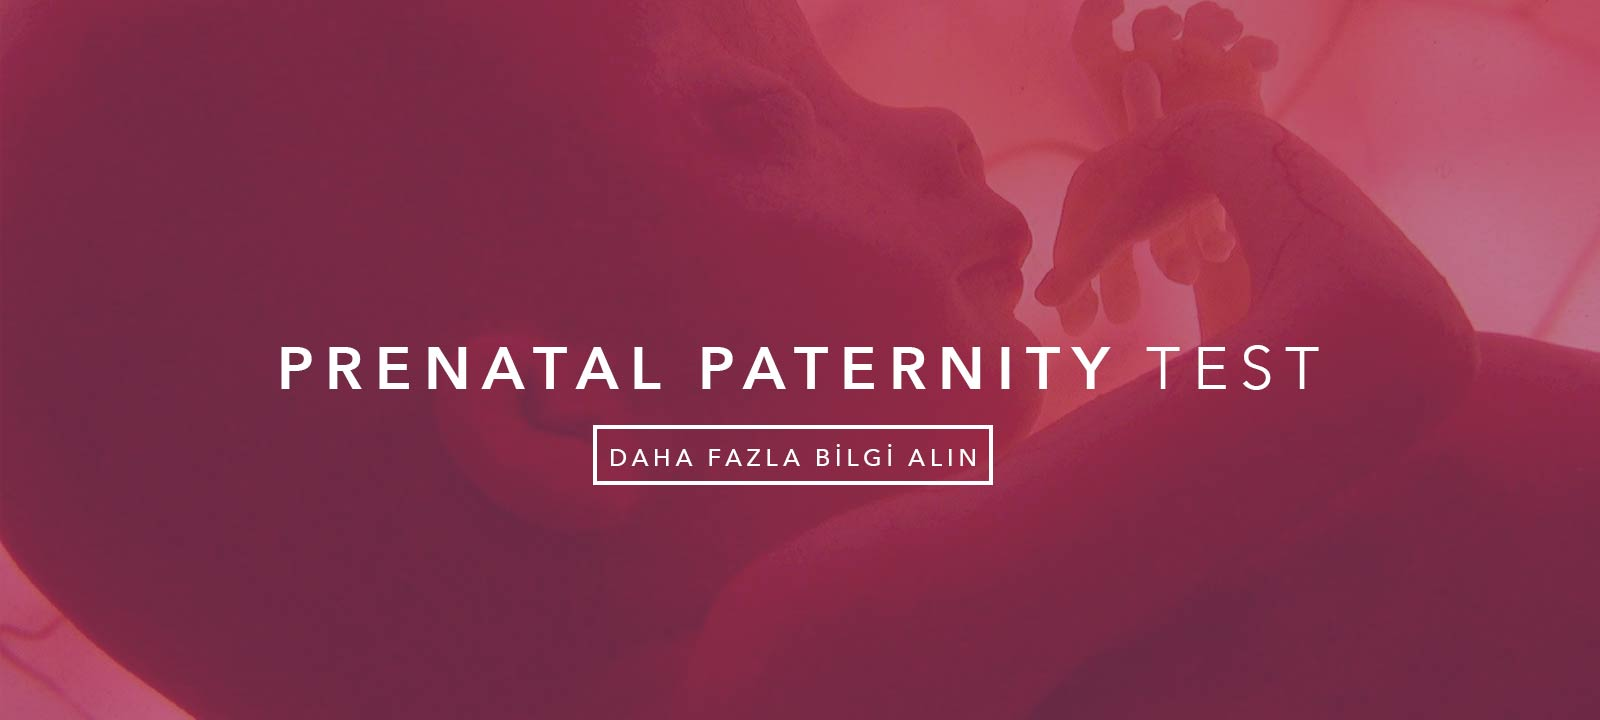 Prenatal Paternity Test